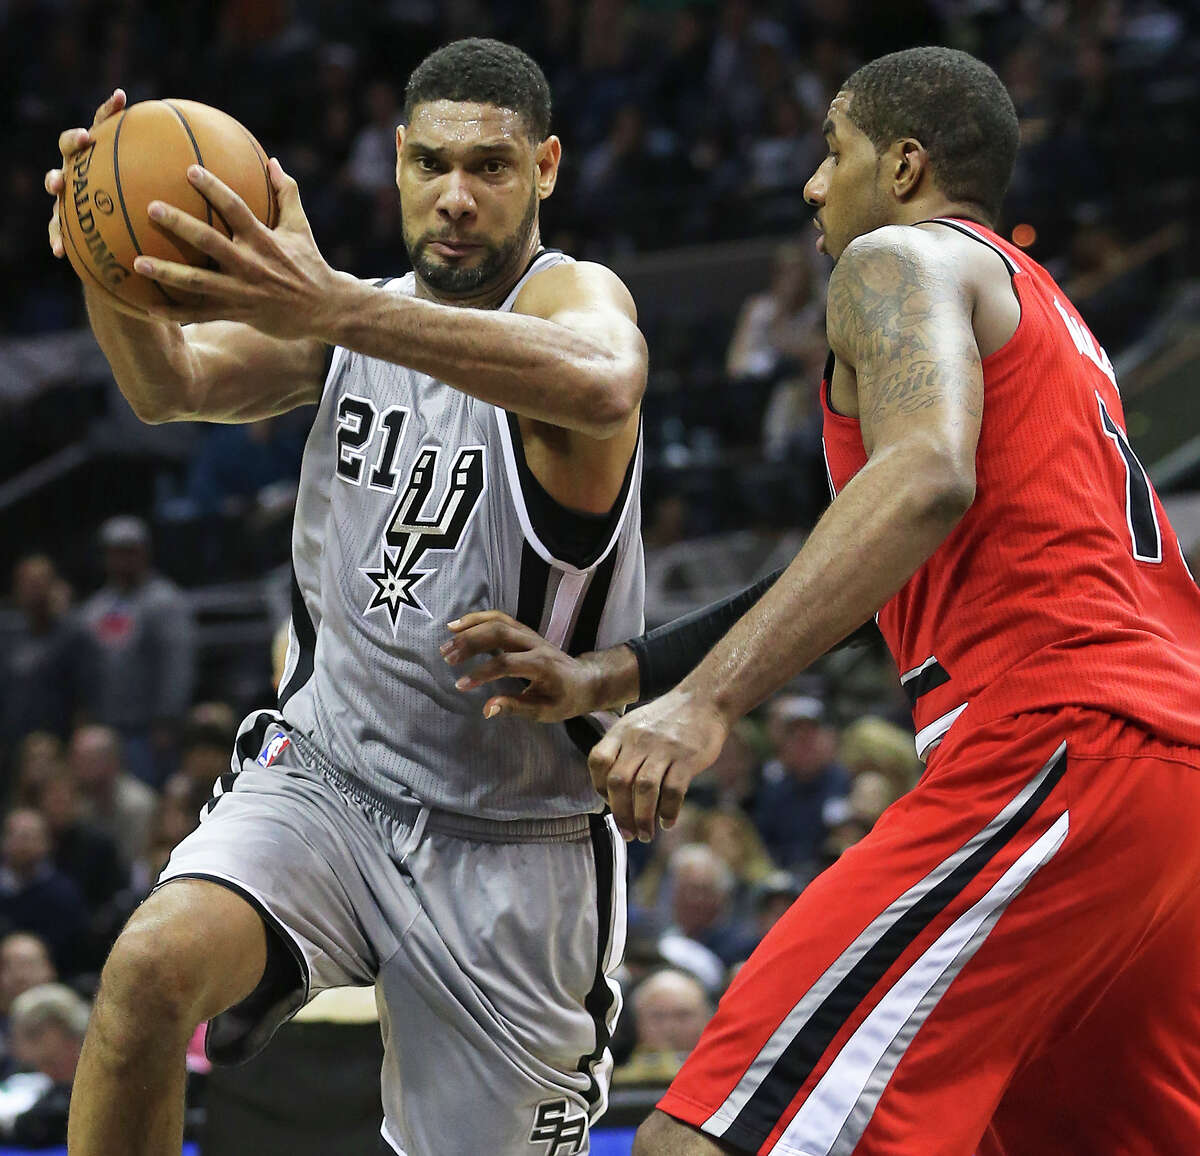 Tim Duncan turns to the hoop against LaMarcus Aldridge in overtime as the Spurs host the Portland Trailblazers at the AT&T Center on December 19, 2014.